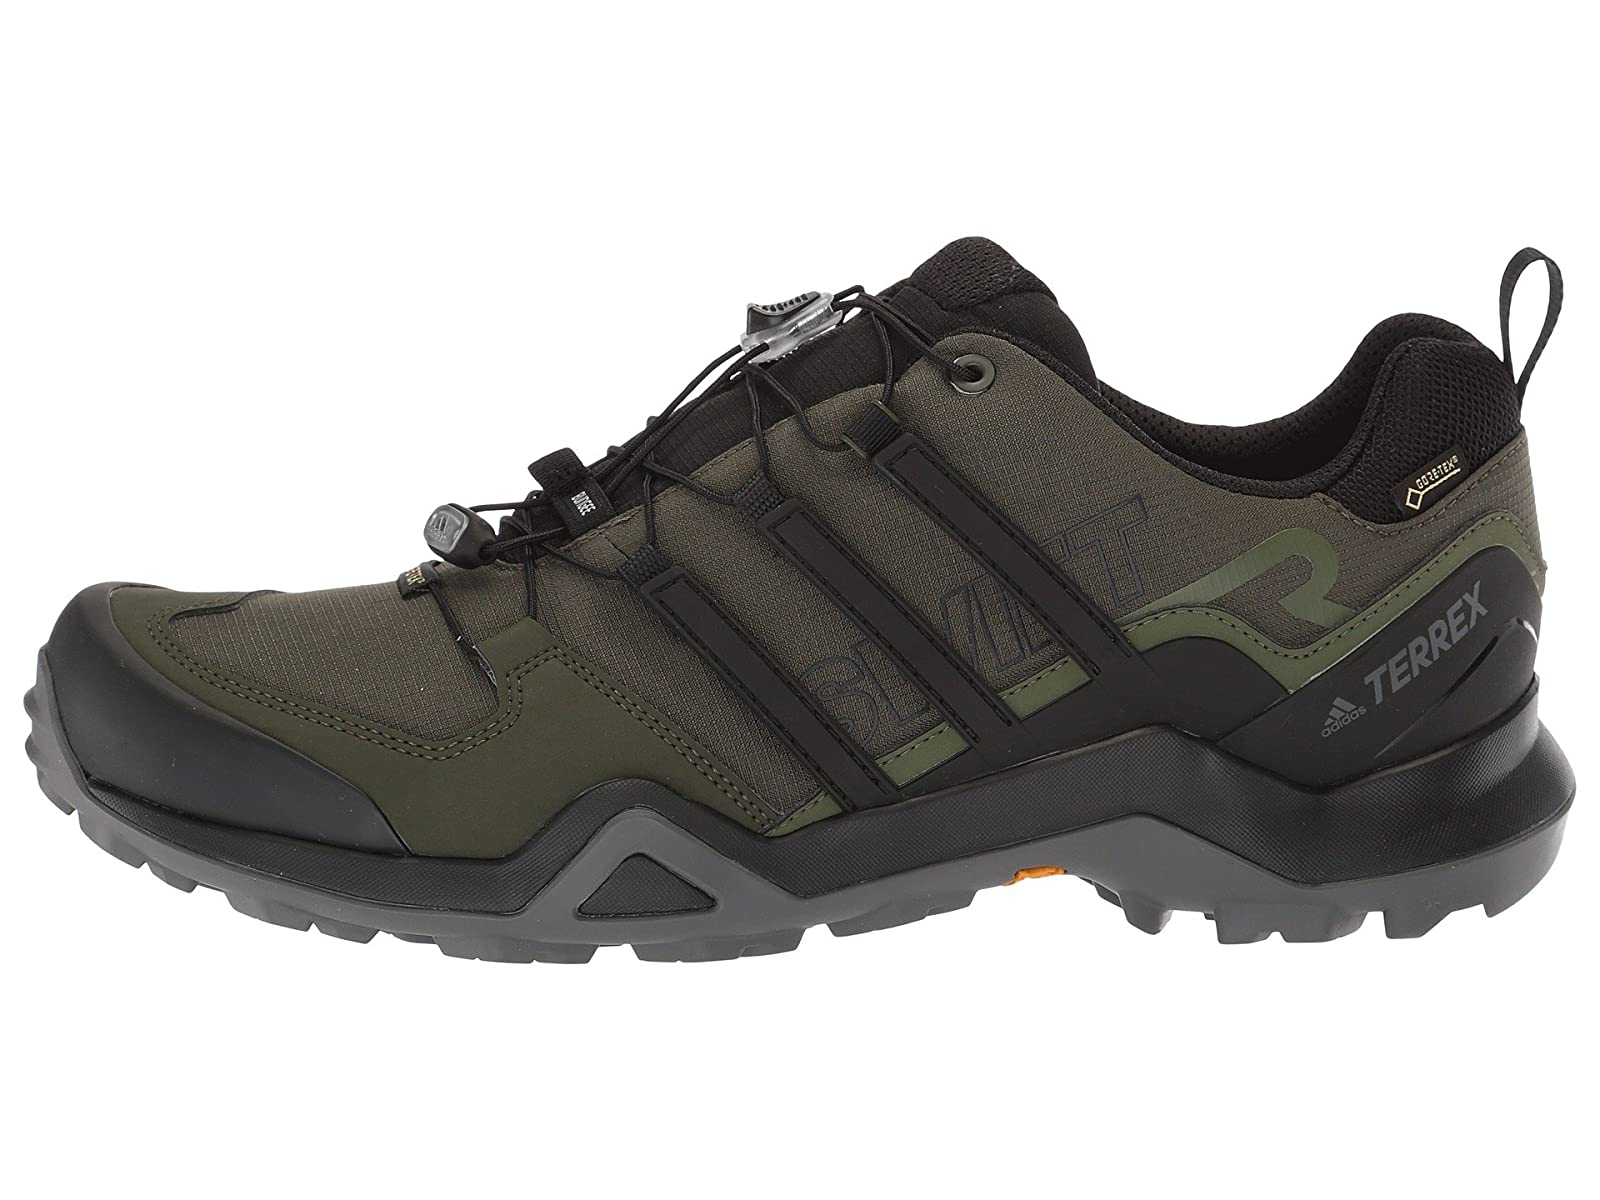 Man-039-s-Sneakers-amp-Athletic-Shoes-adidas-Outdoor-Terrex-Swift-R2-GTX thumbnail 26